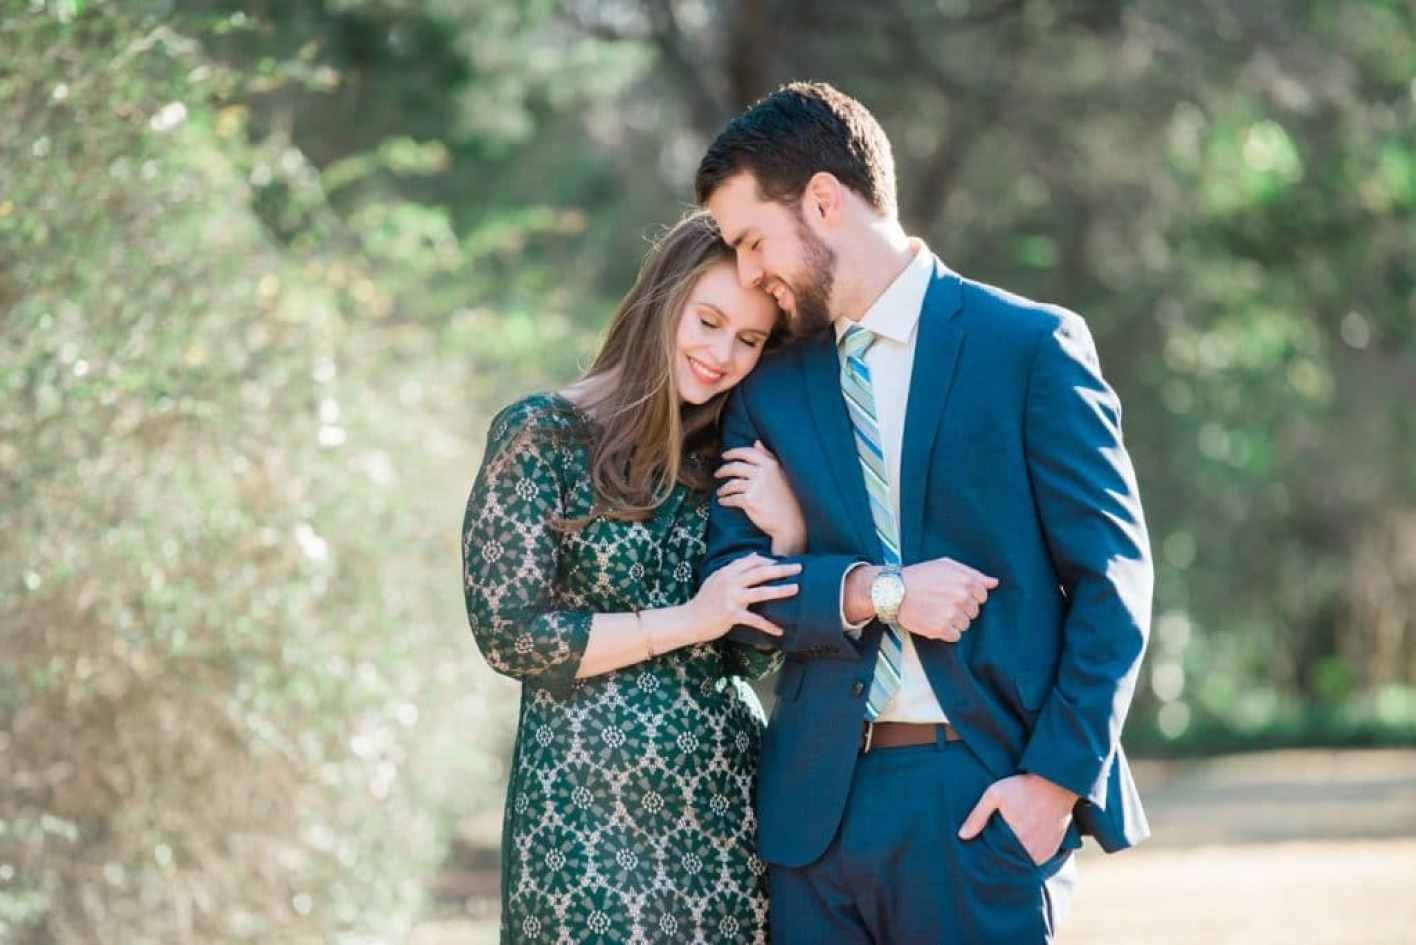 Relocate Your Wedding Photography Business, Emily Chappell - Dallas Wedding Photographer